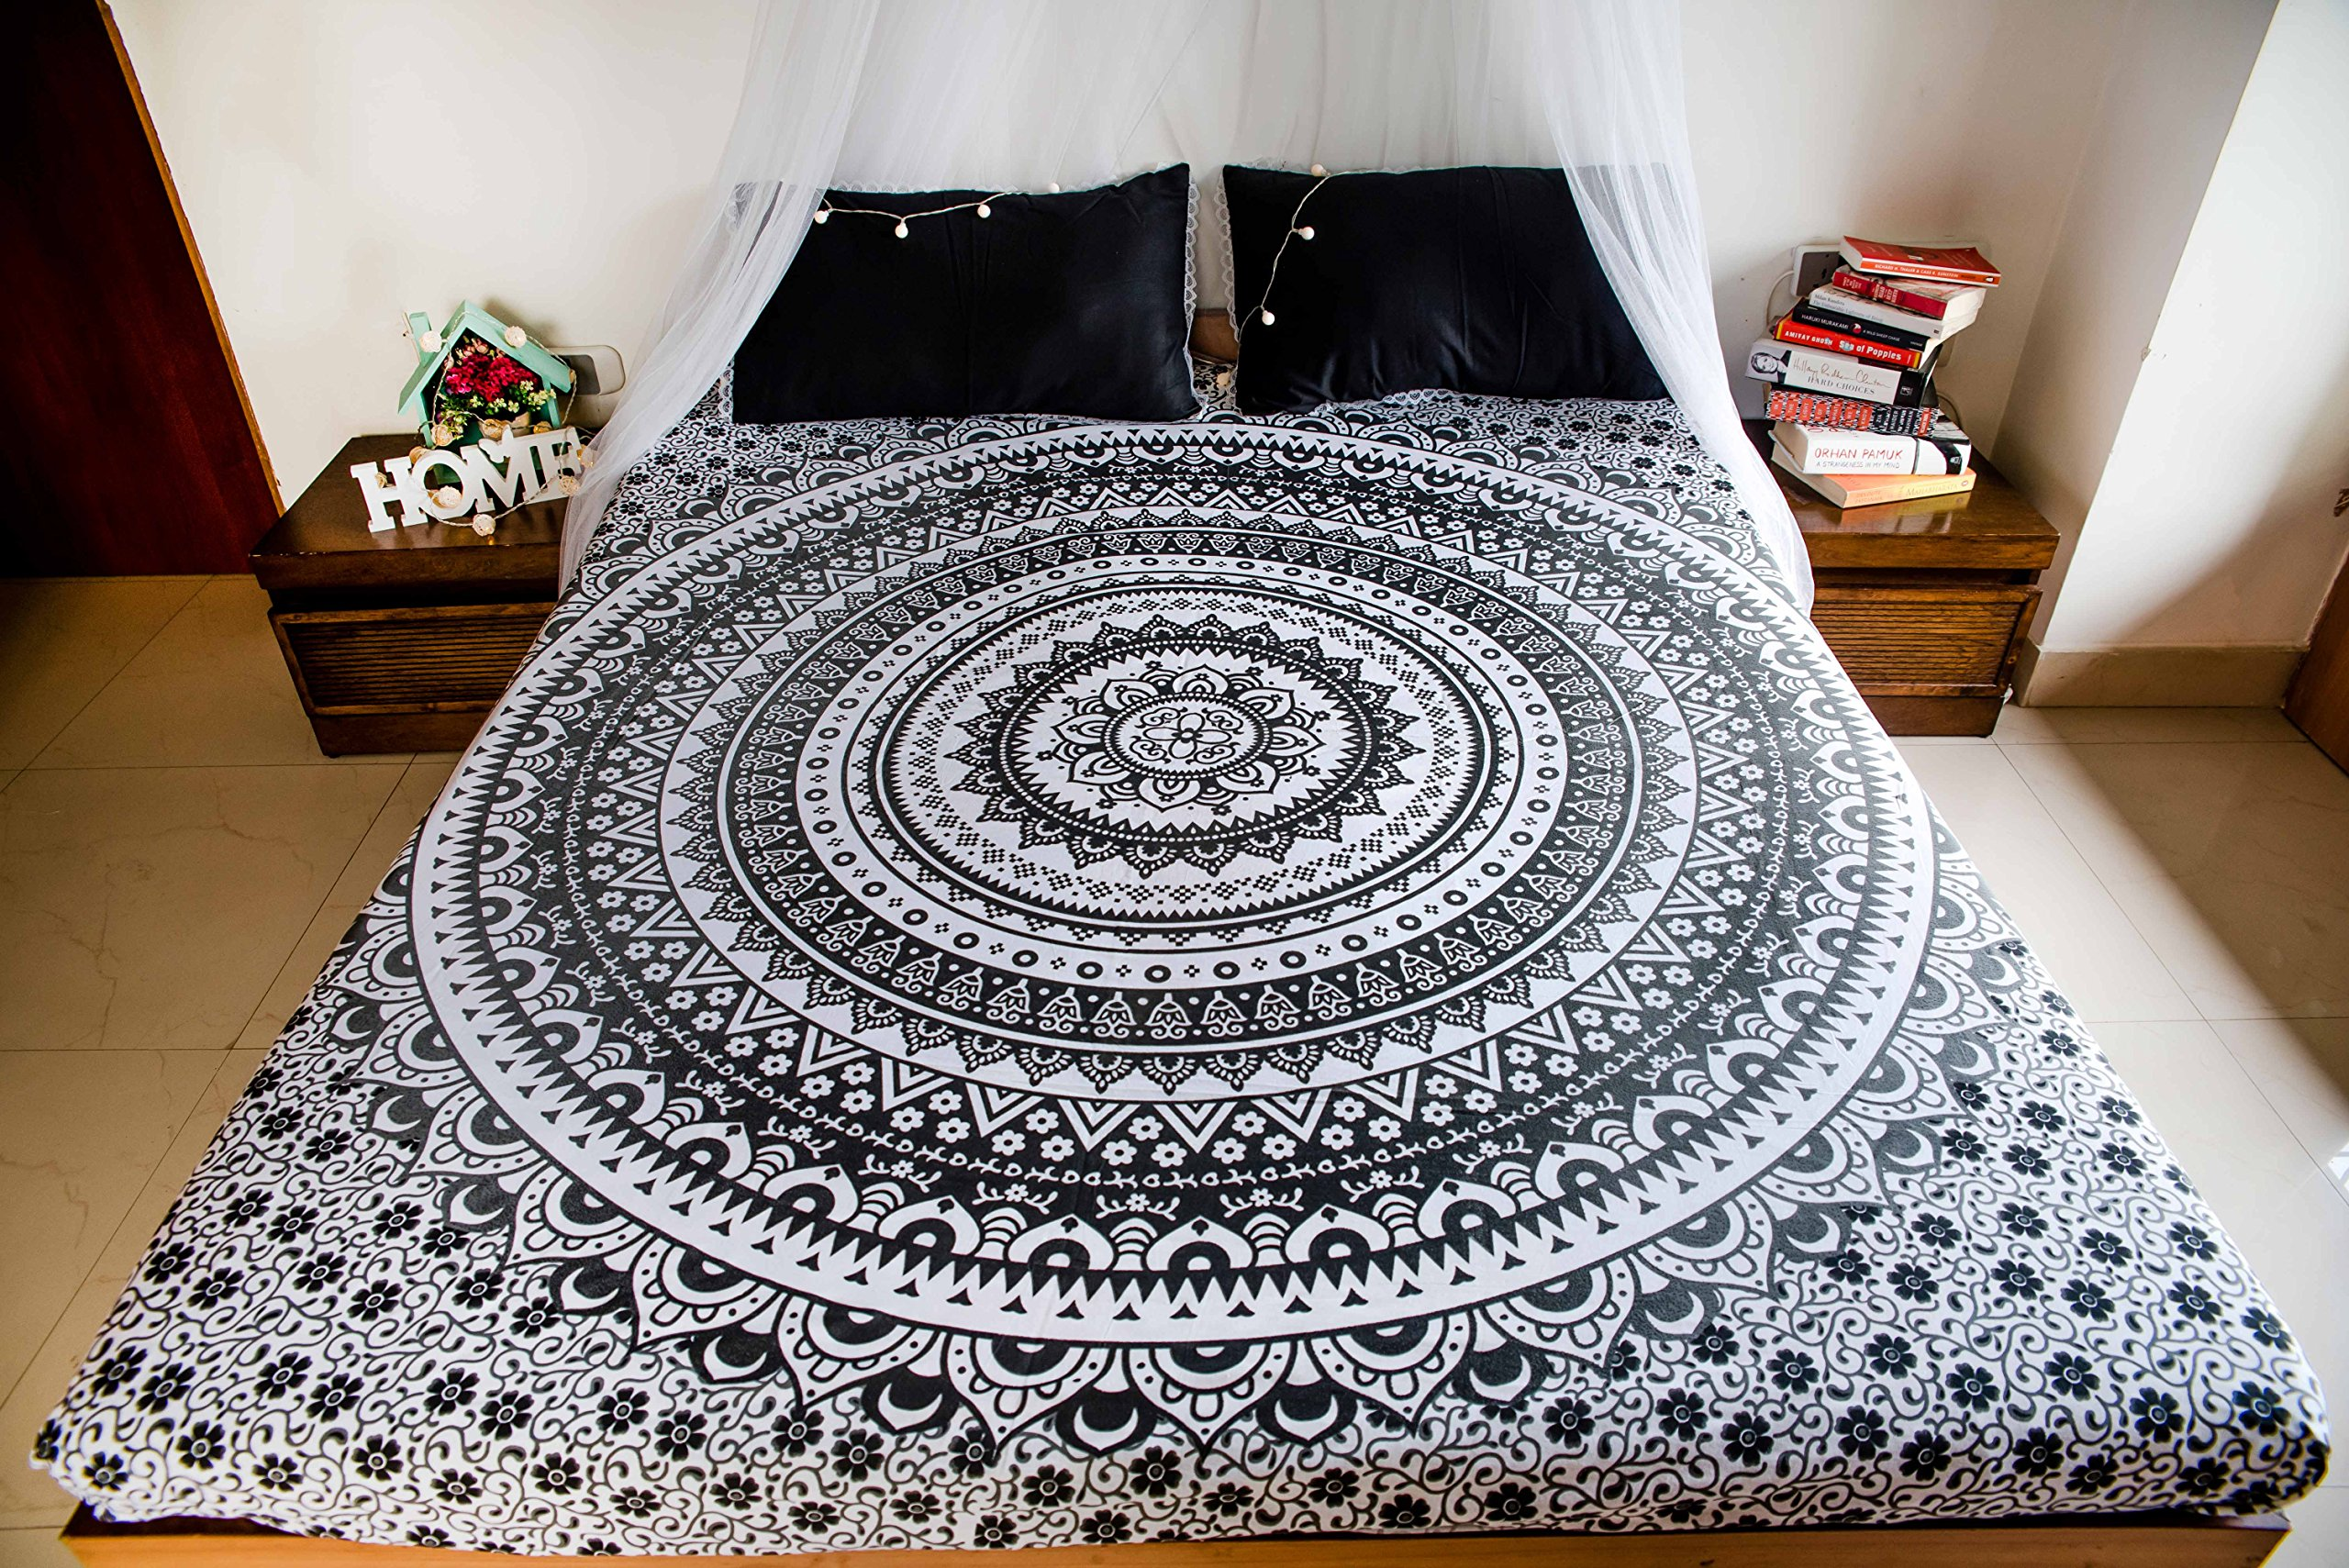 Intricate Mandala Tapestry Bedding with Pillow Covers, Indian Bohemian Hippie Tapestry Wall Hanging, Hippy Blanket or Beach Throw, Mandala Ombre Bedspread for Bedroom, Black Gray Queen Size Boho Decor